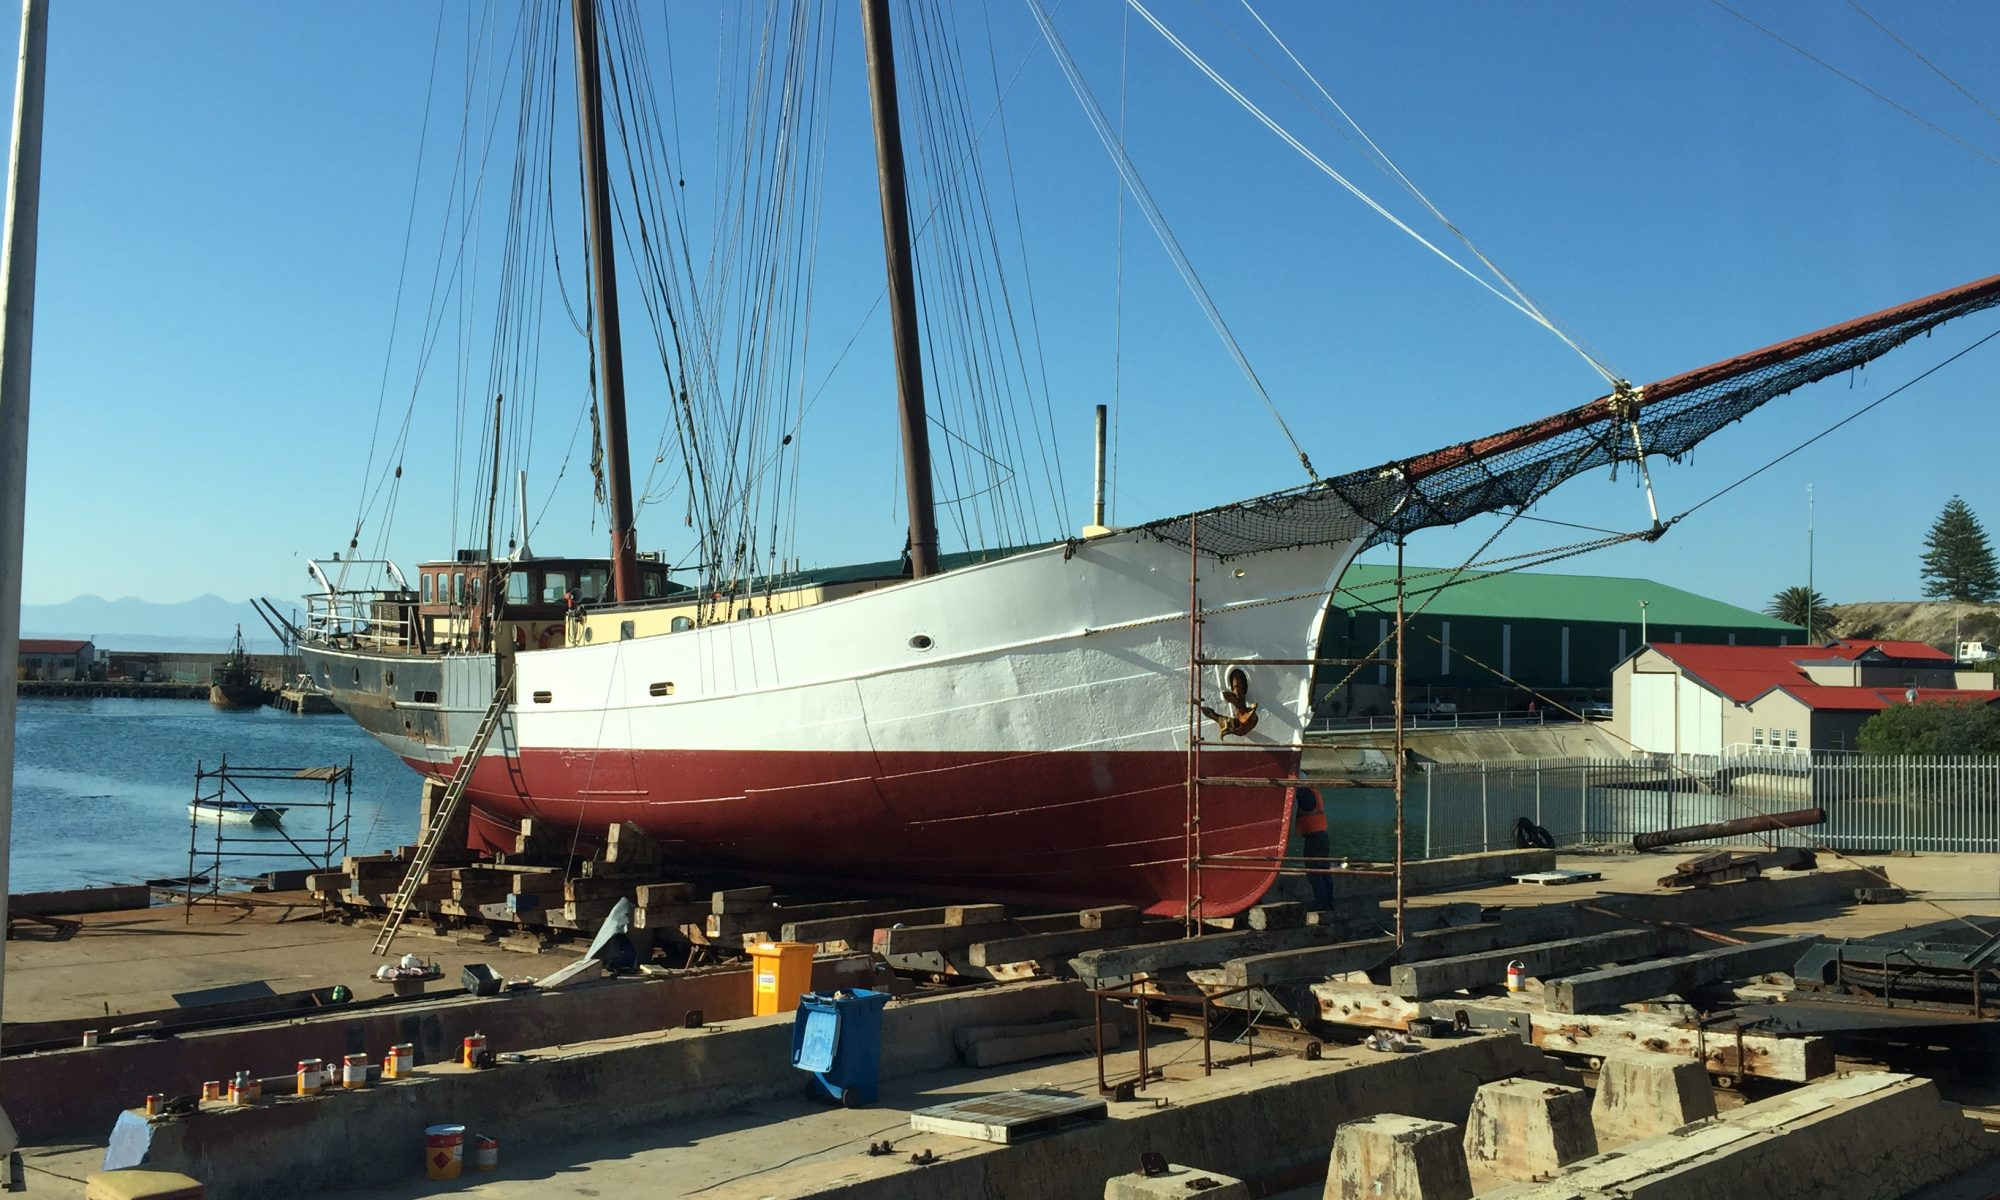 Luna Moon, a 118-foot gaff rigged schooner, on dry dock in Mossel Bay for repairs